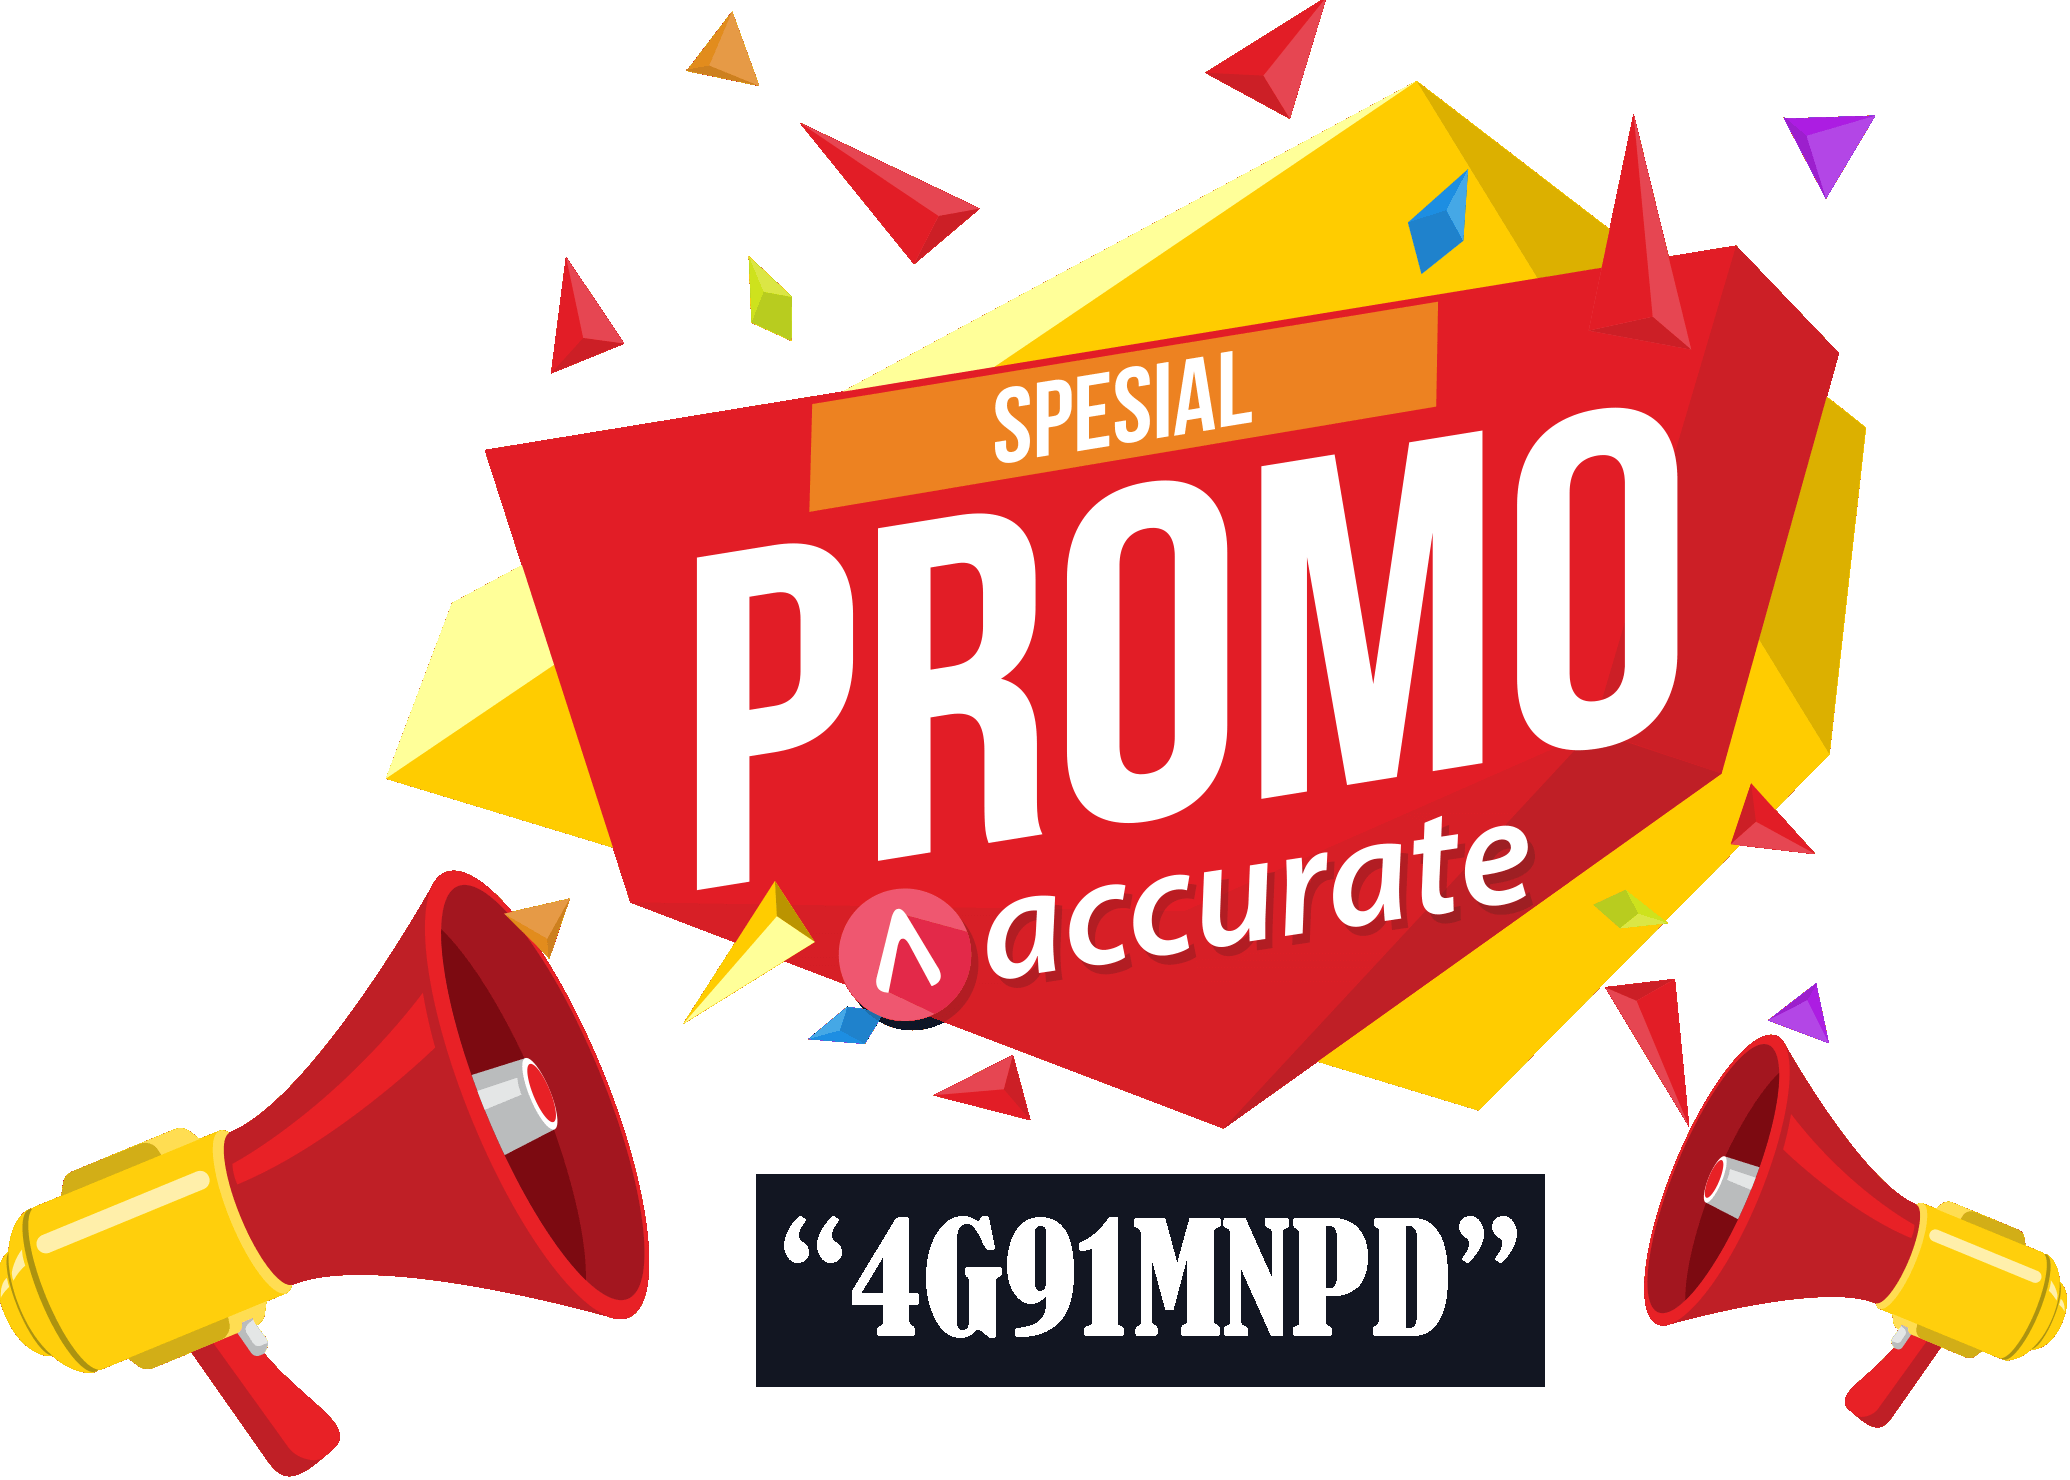 promo accurate lite